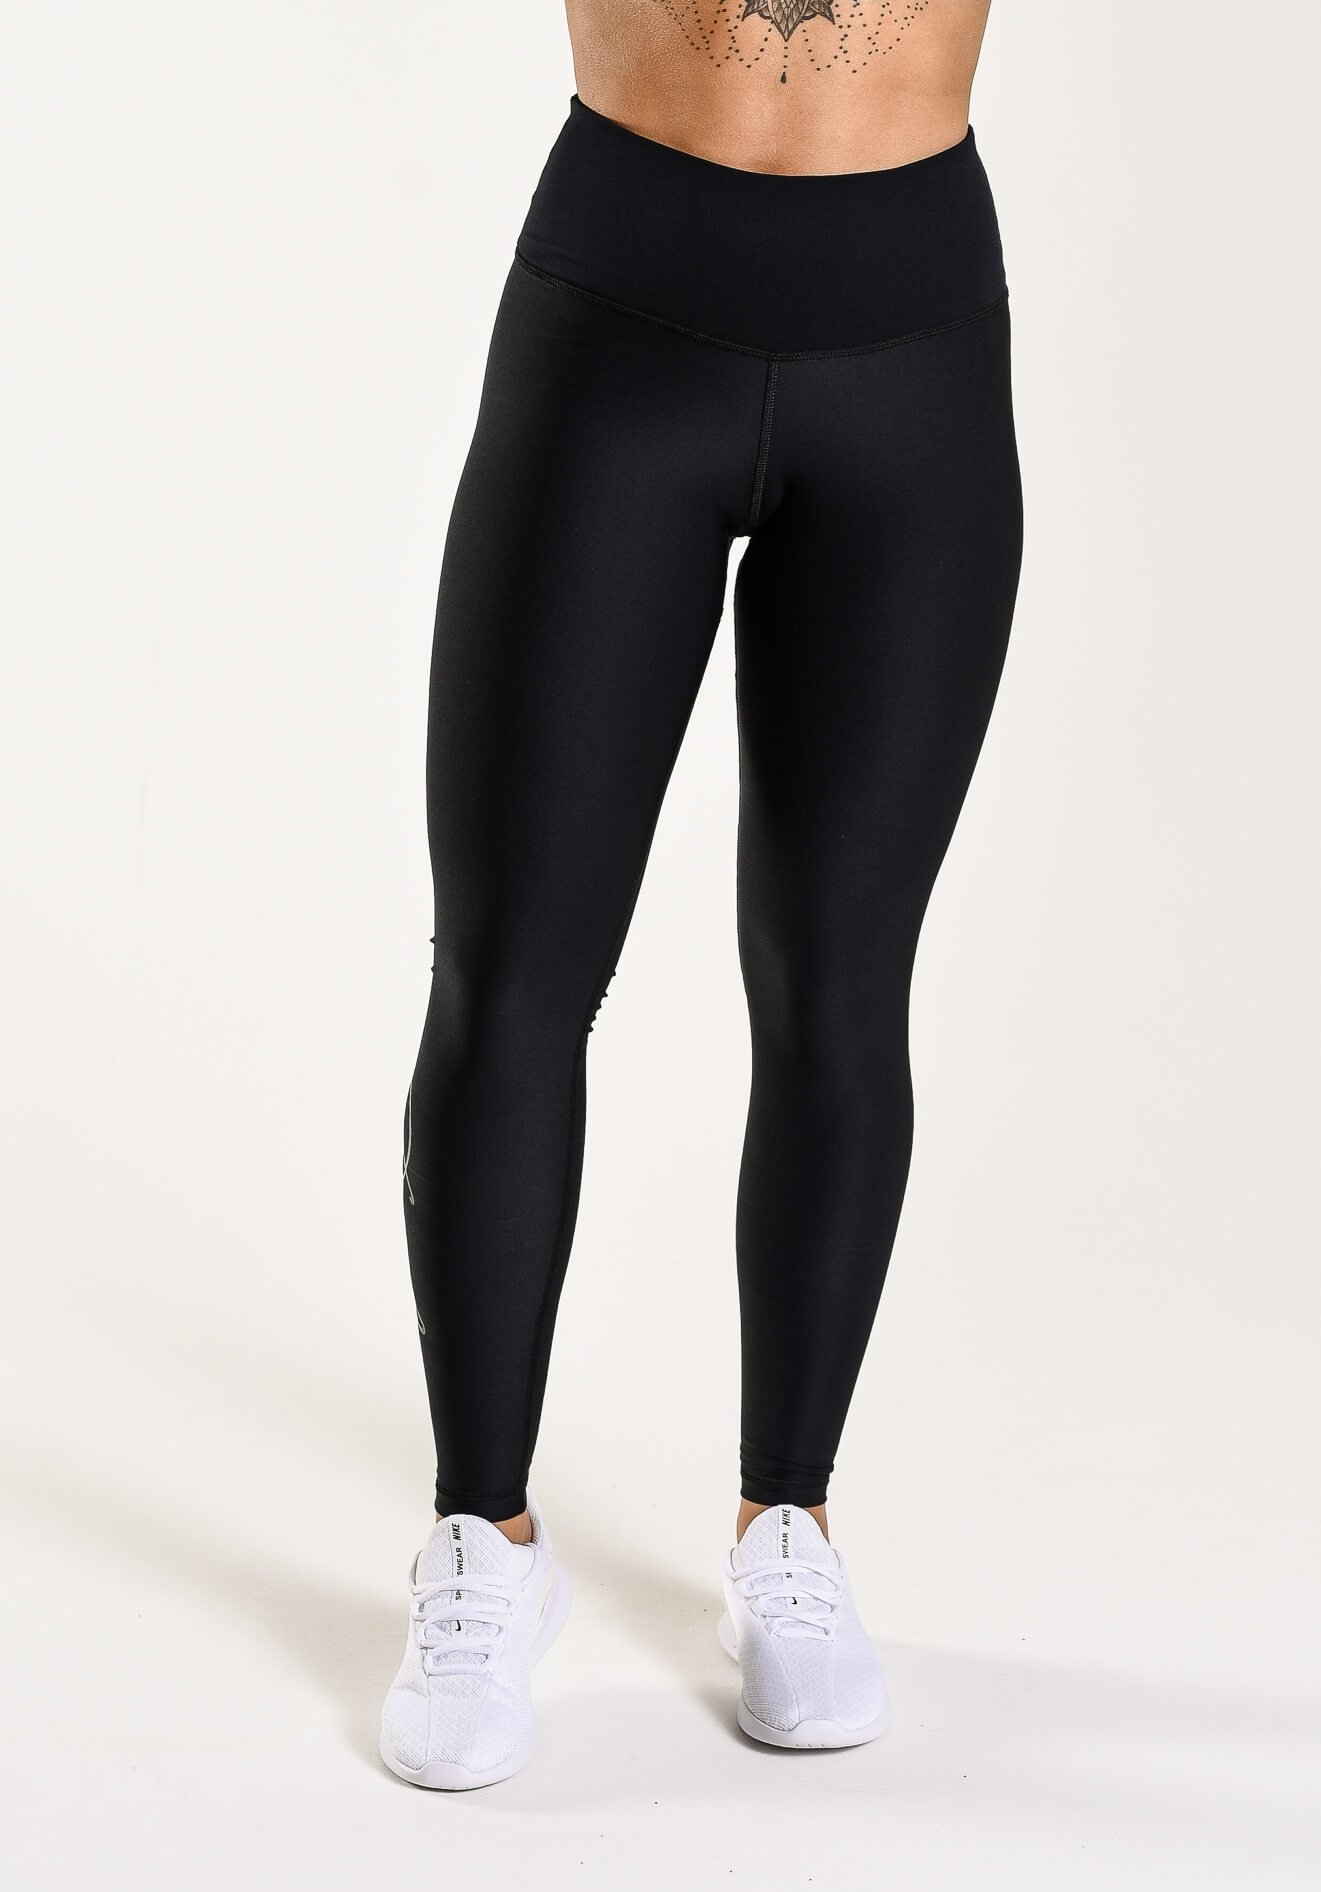 Stealth Tights